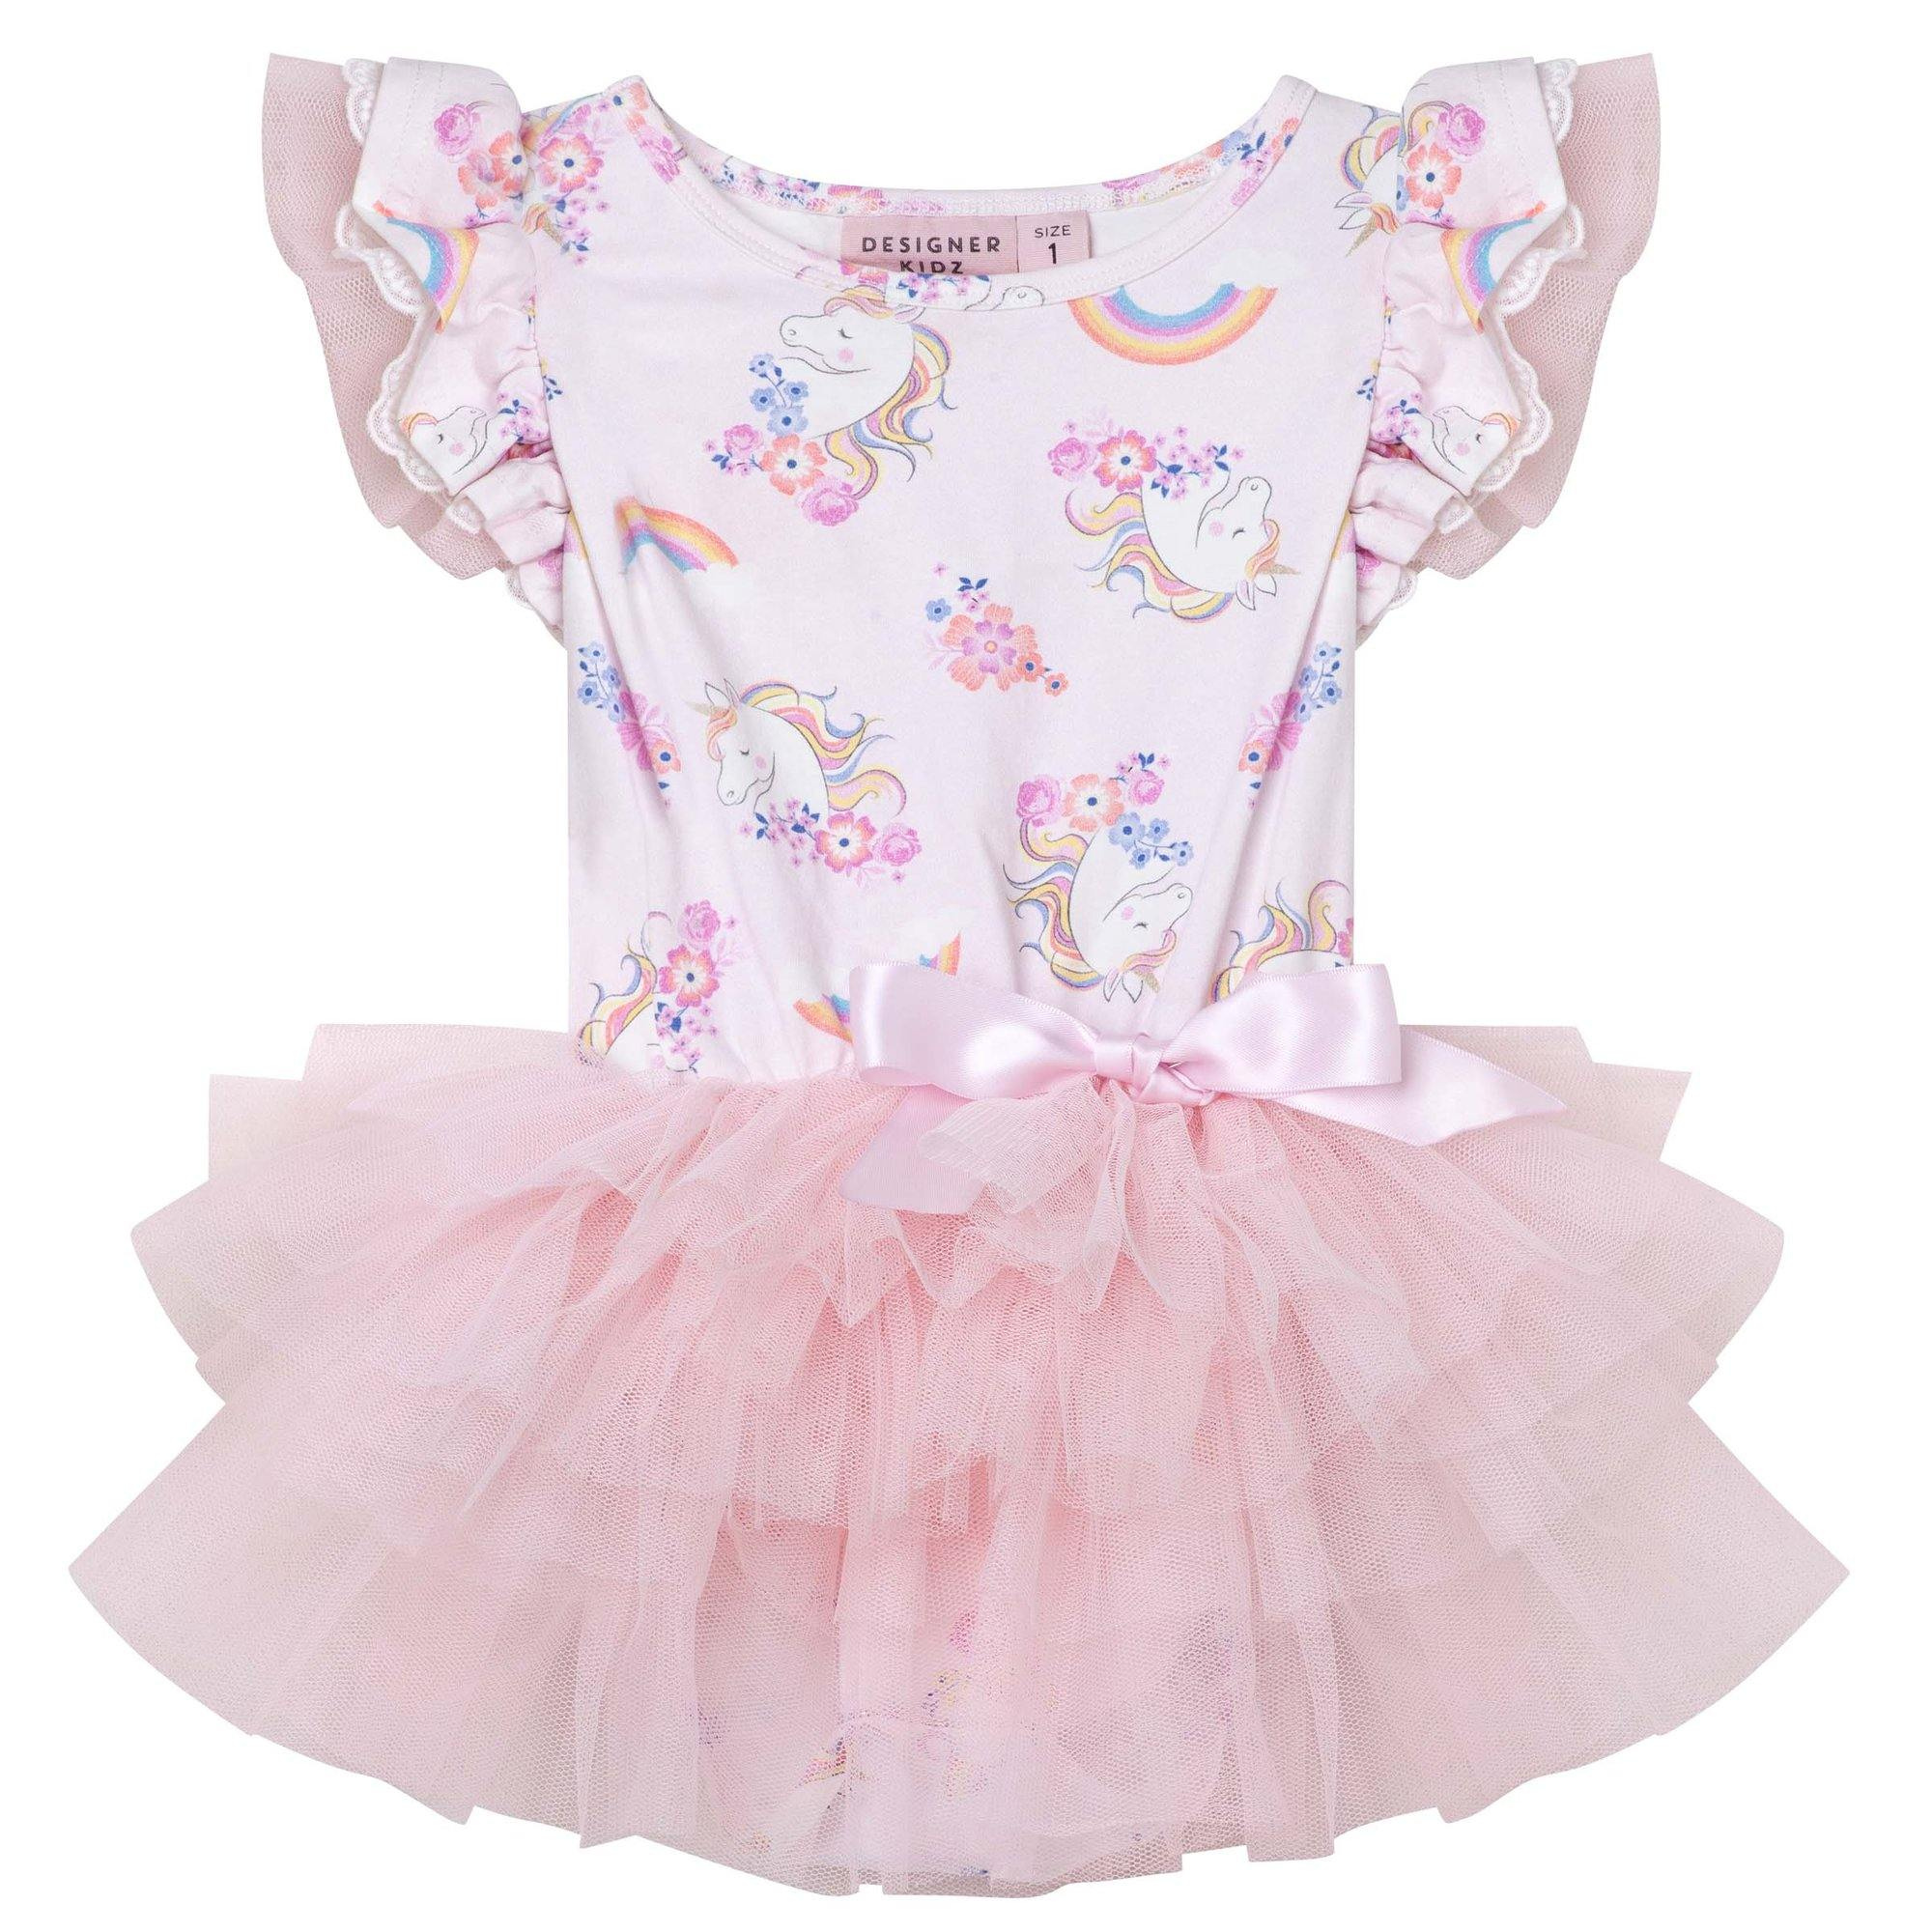 Enchanted Unicorn SS Petti Romper